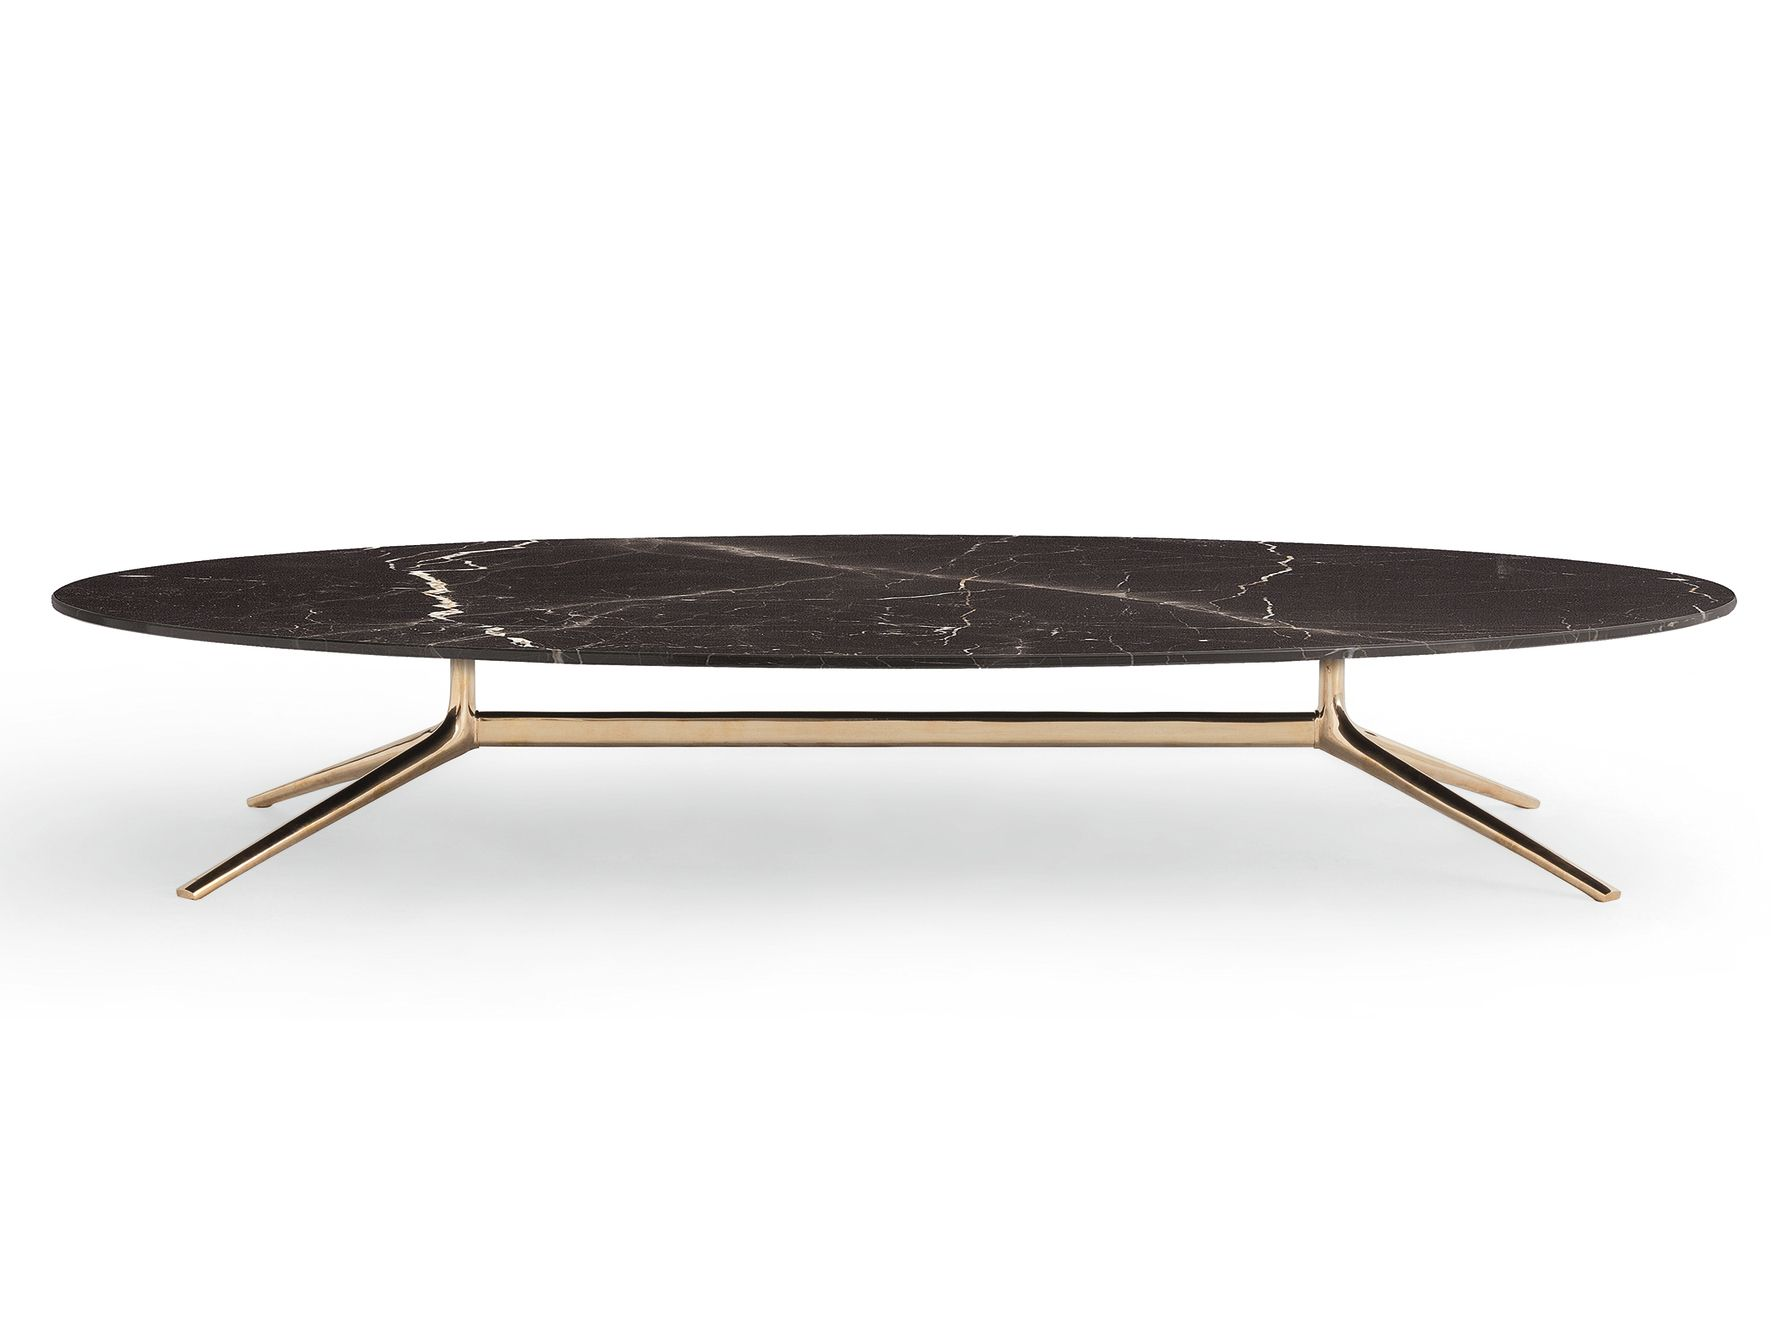 MONDRIAN Oval coffee table Mondrian Collection by Poliform design